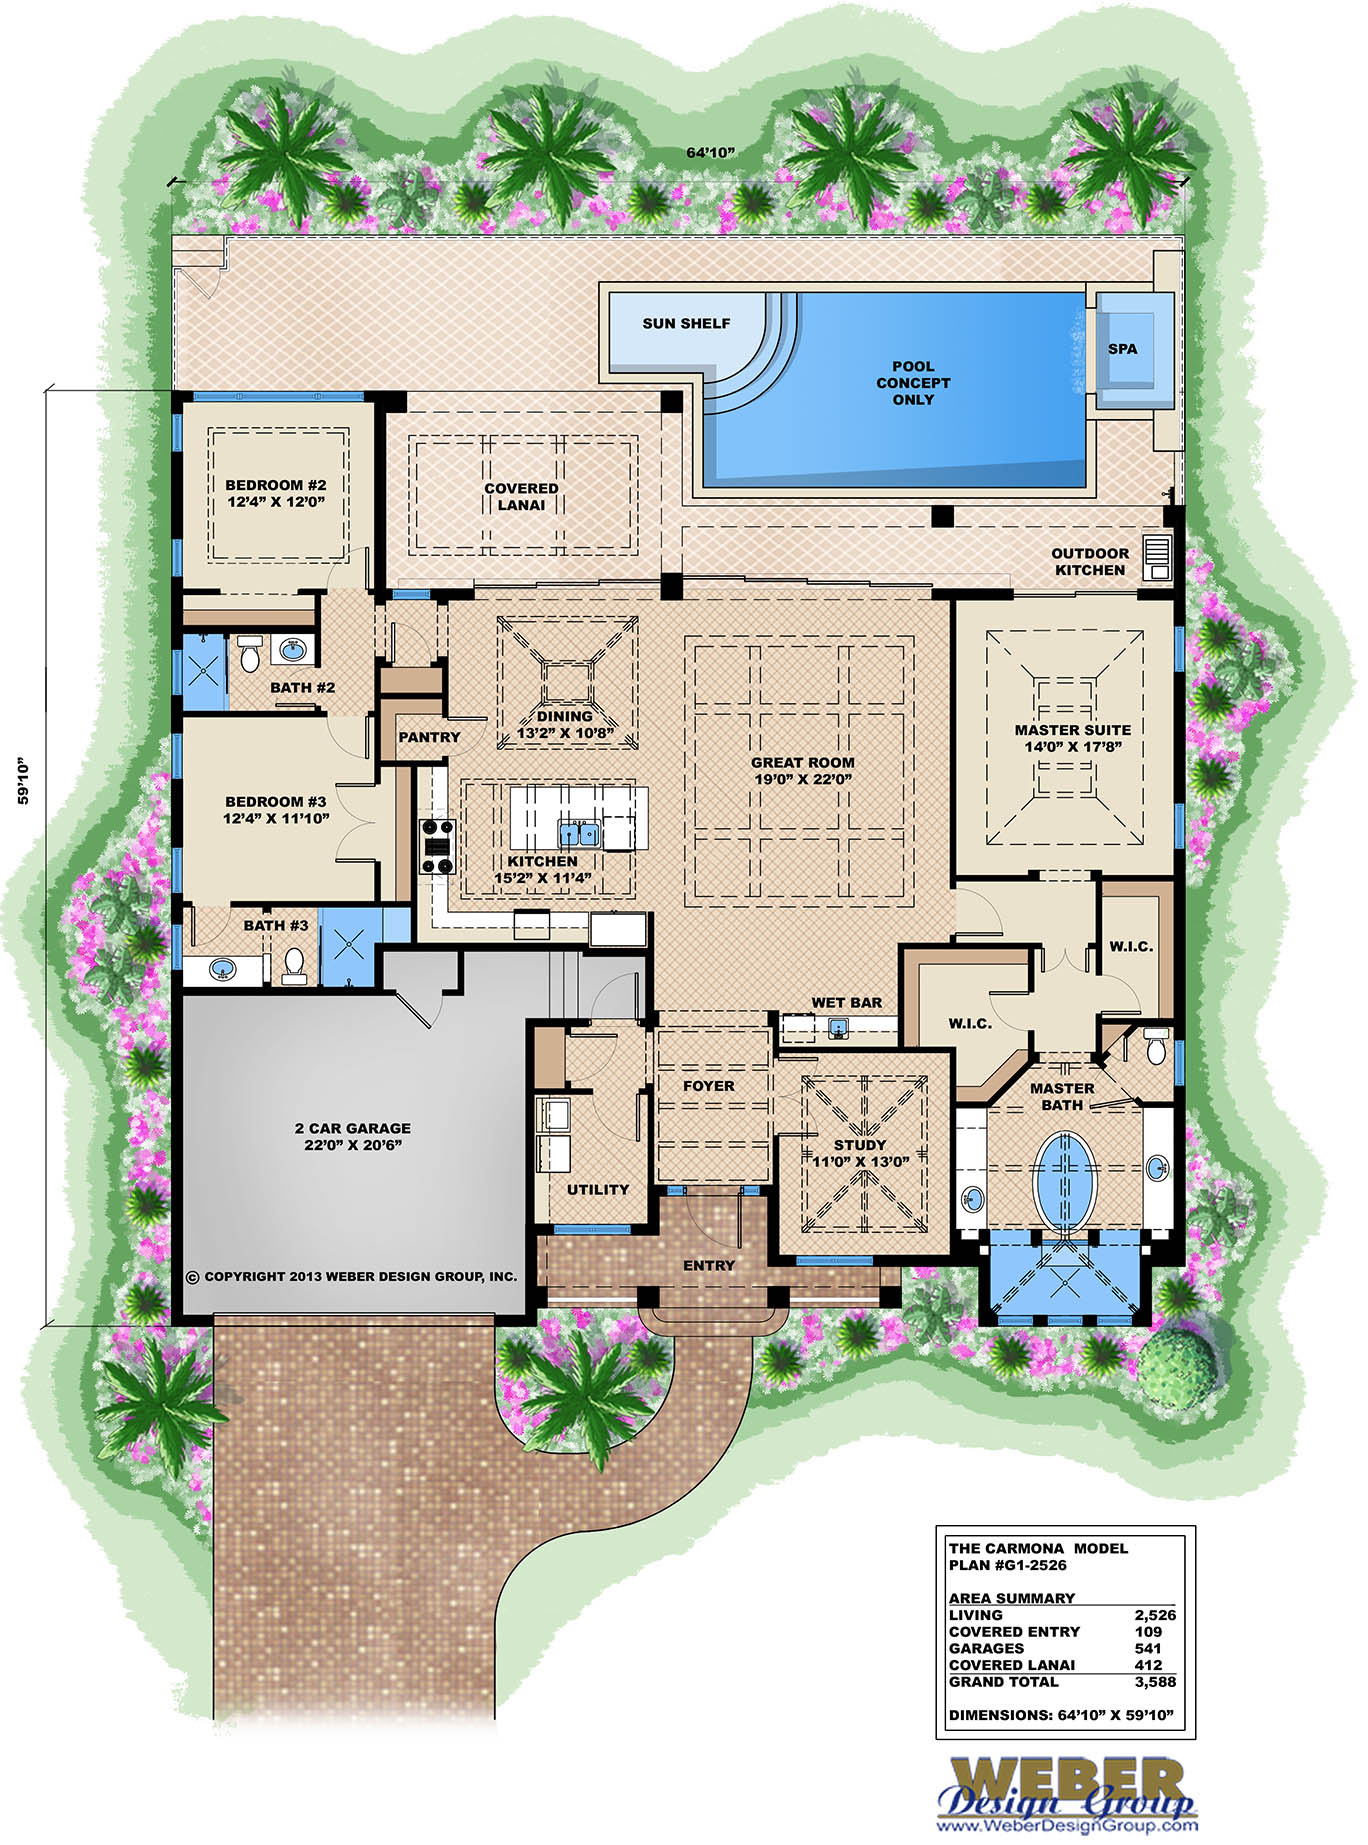 West In s House Plan Contemporary Beach Island Home Floor Plan